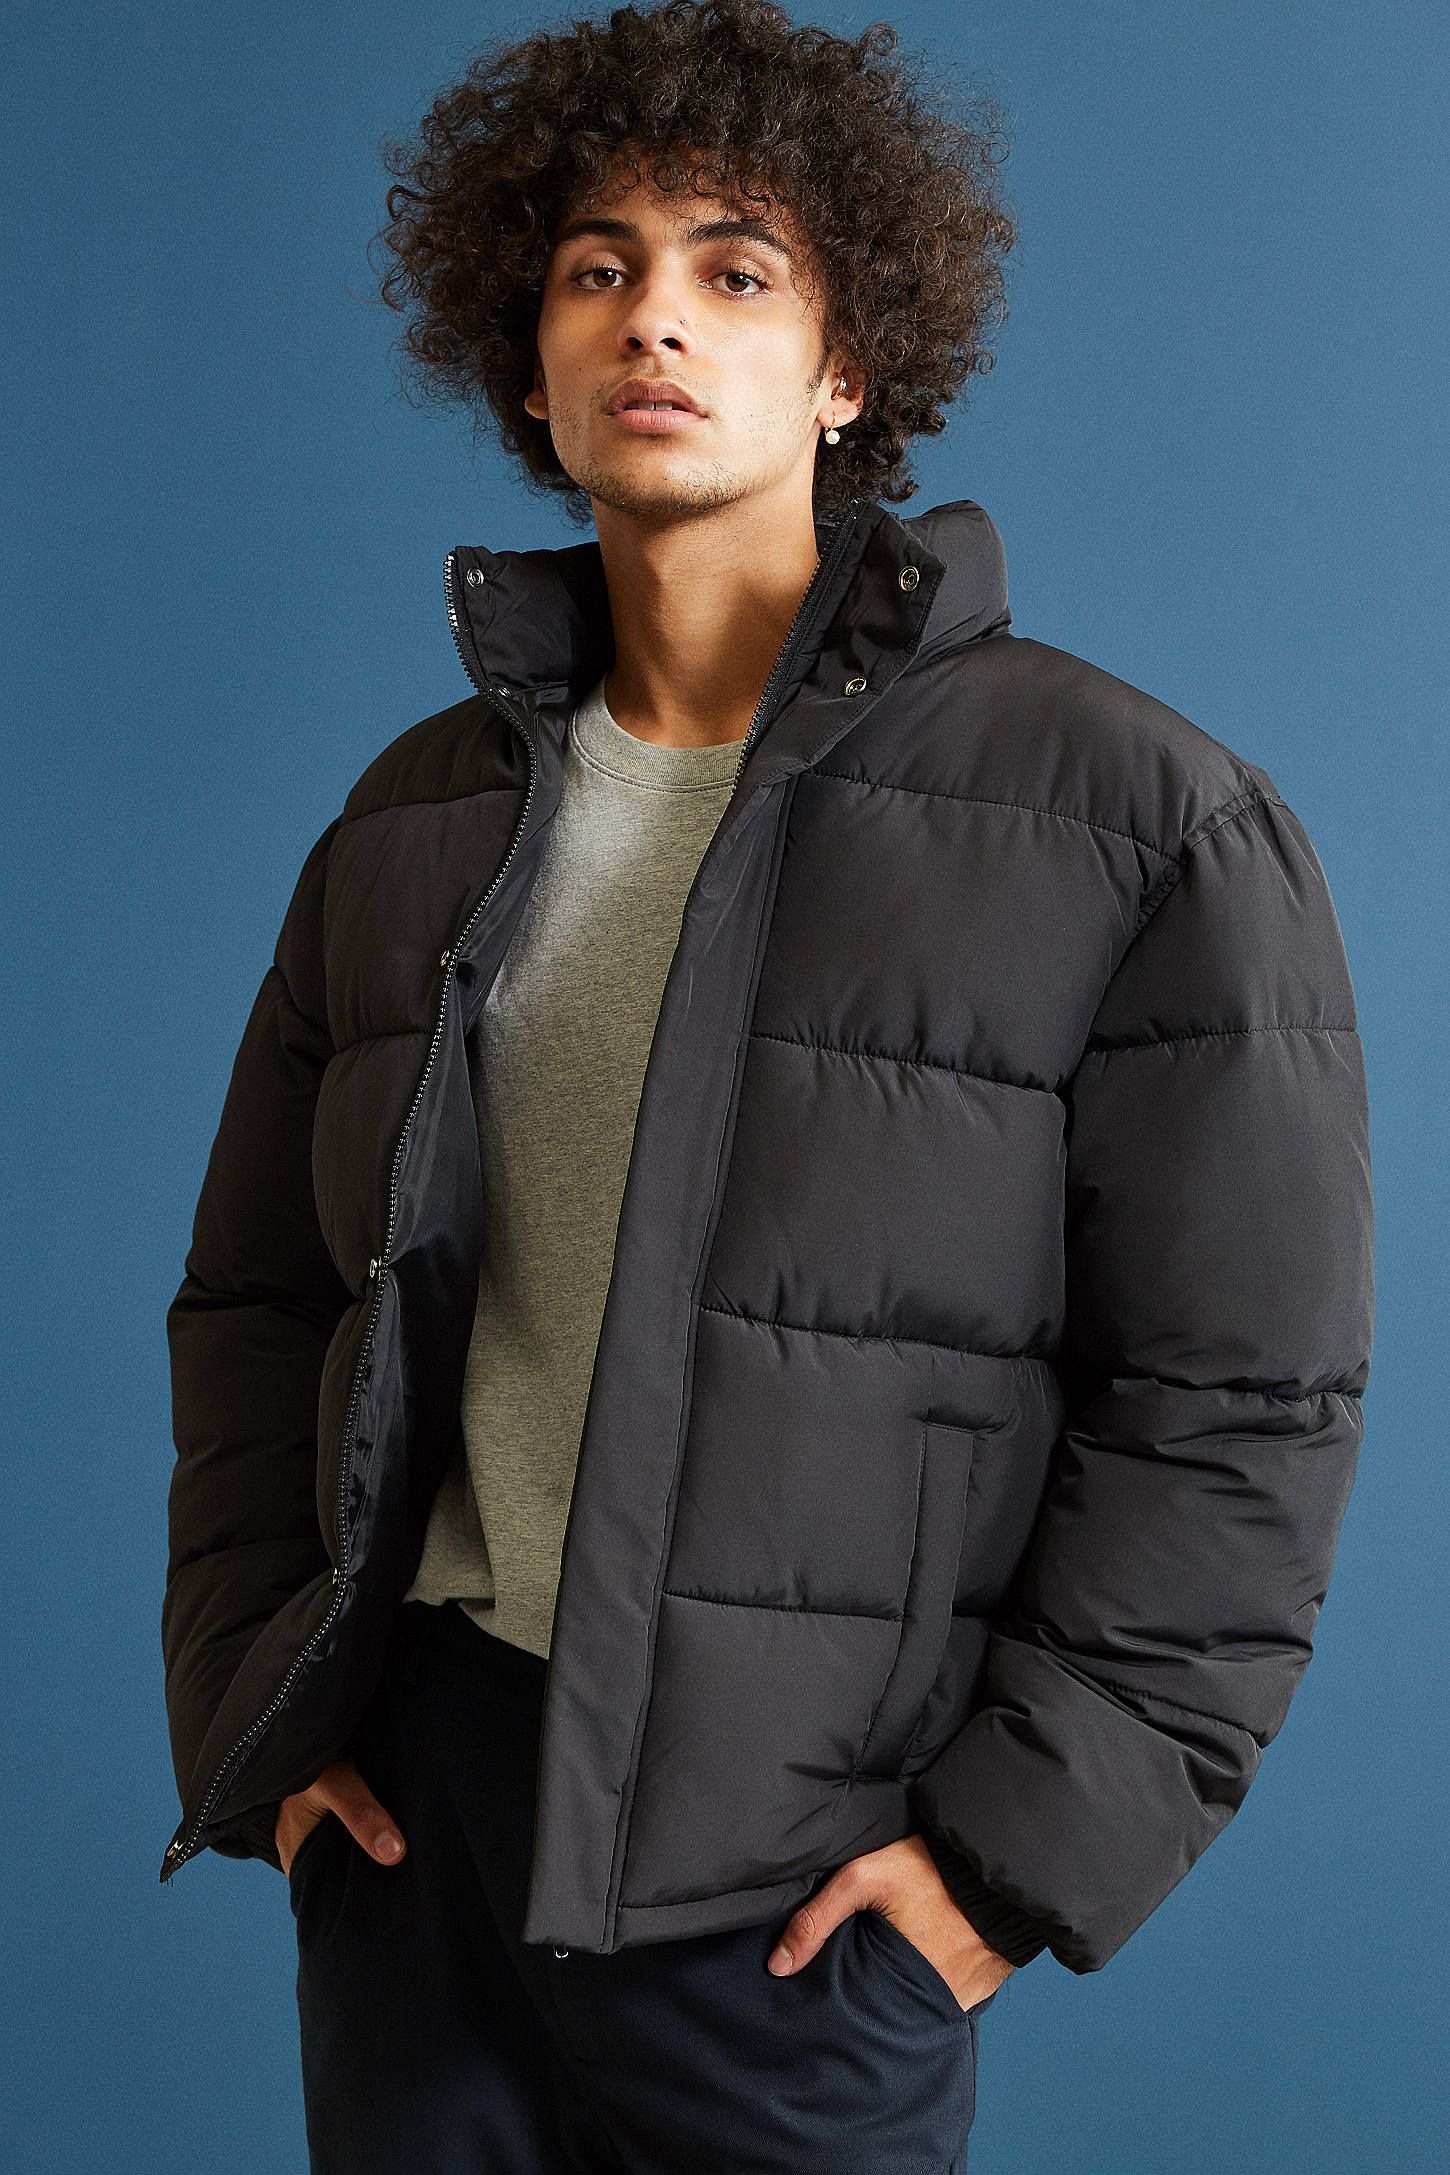 Shop Uo Puffer Jacket At Urban Outfitters Today We Carry All The Latest Styles Colors And Brands For You To Choose From Right H Puffer Jackets Jackets Puffer [ 2175 x 1450 Pixel ]